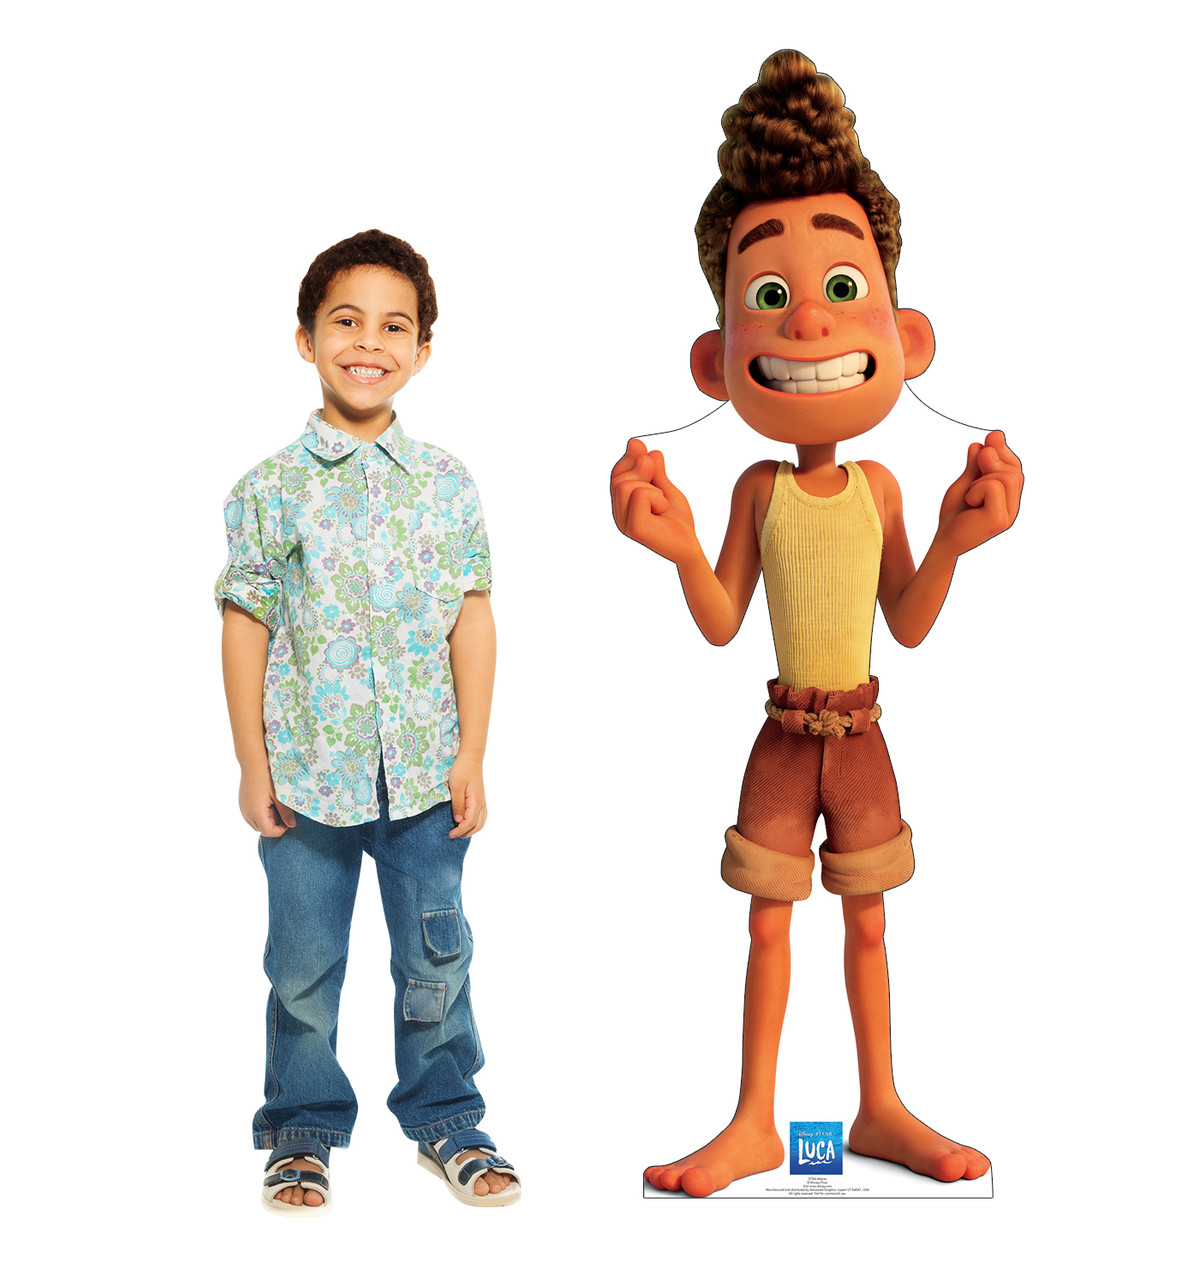 Life-size cardboard standee of Alberto with model.